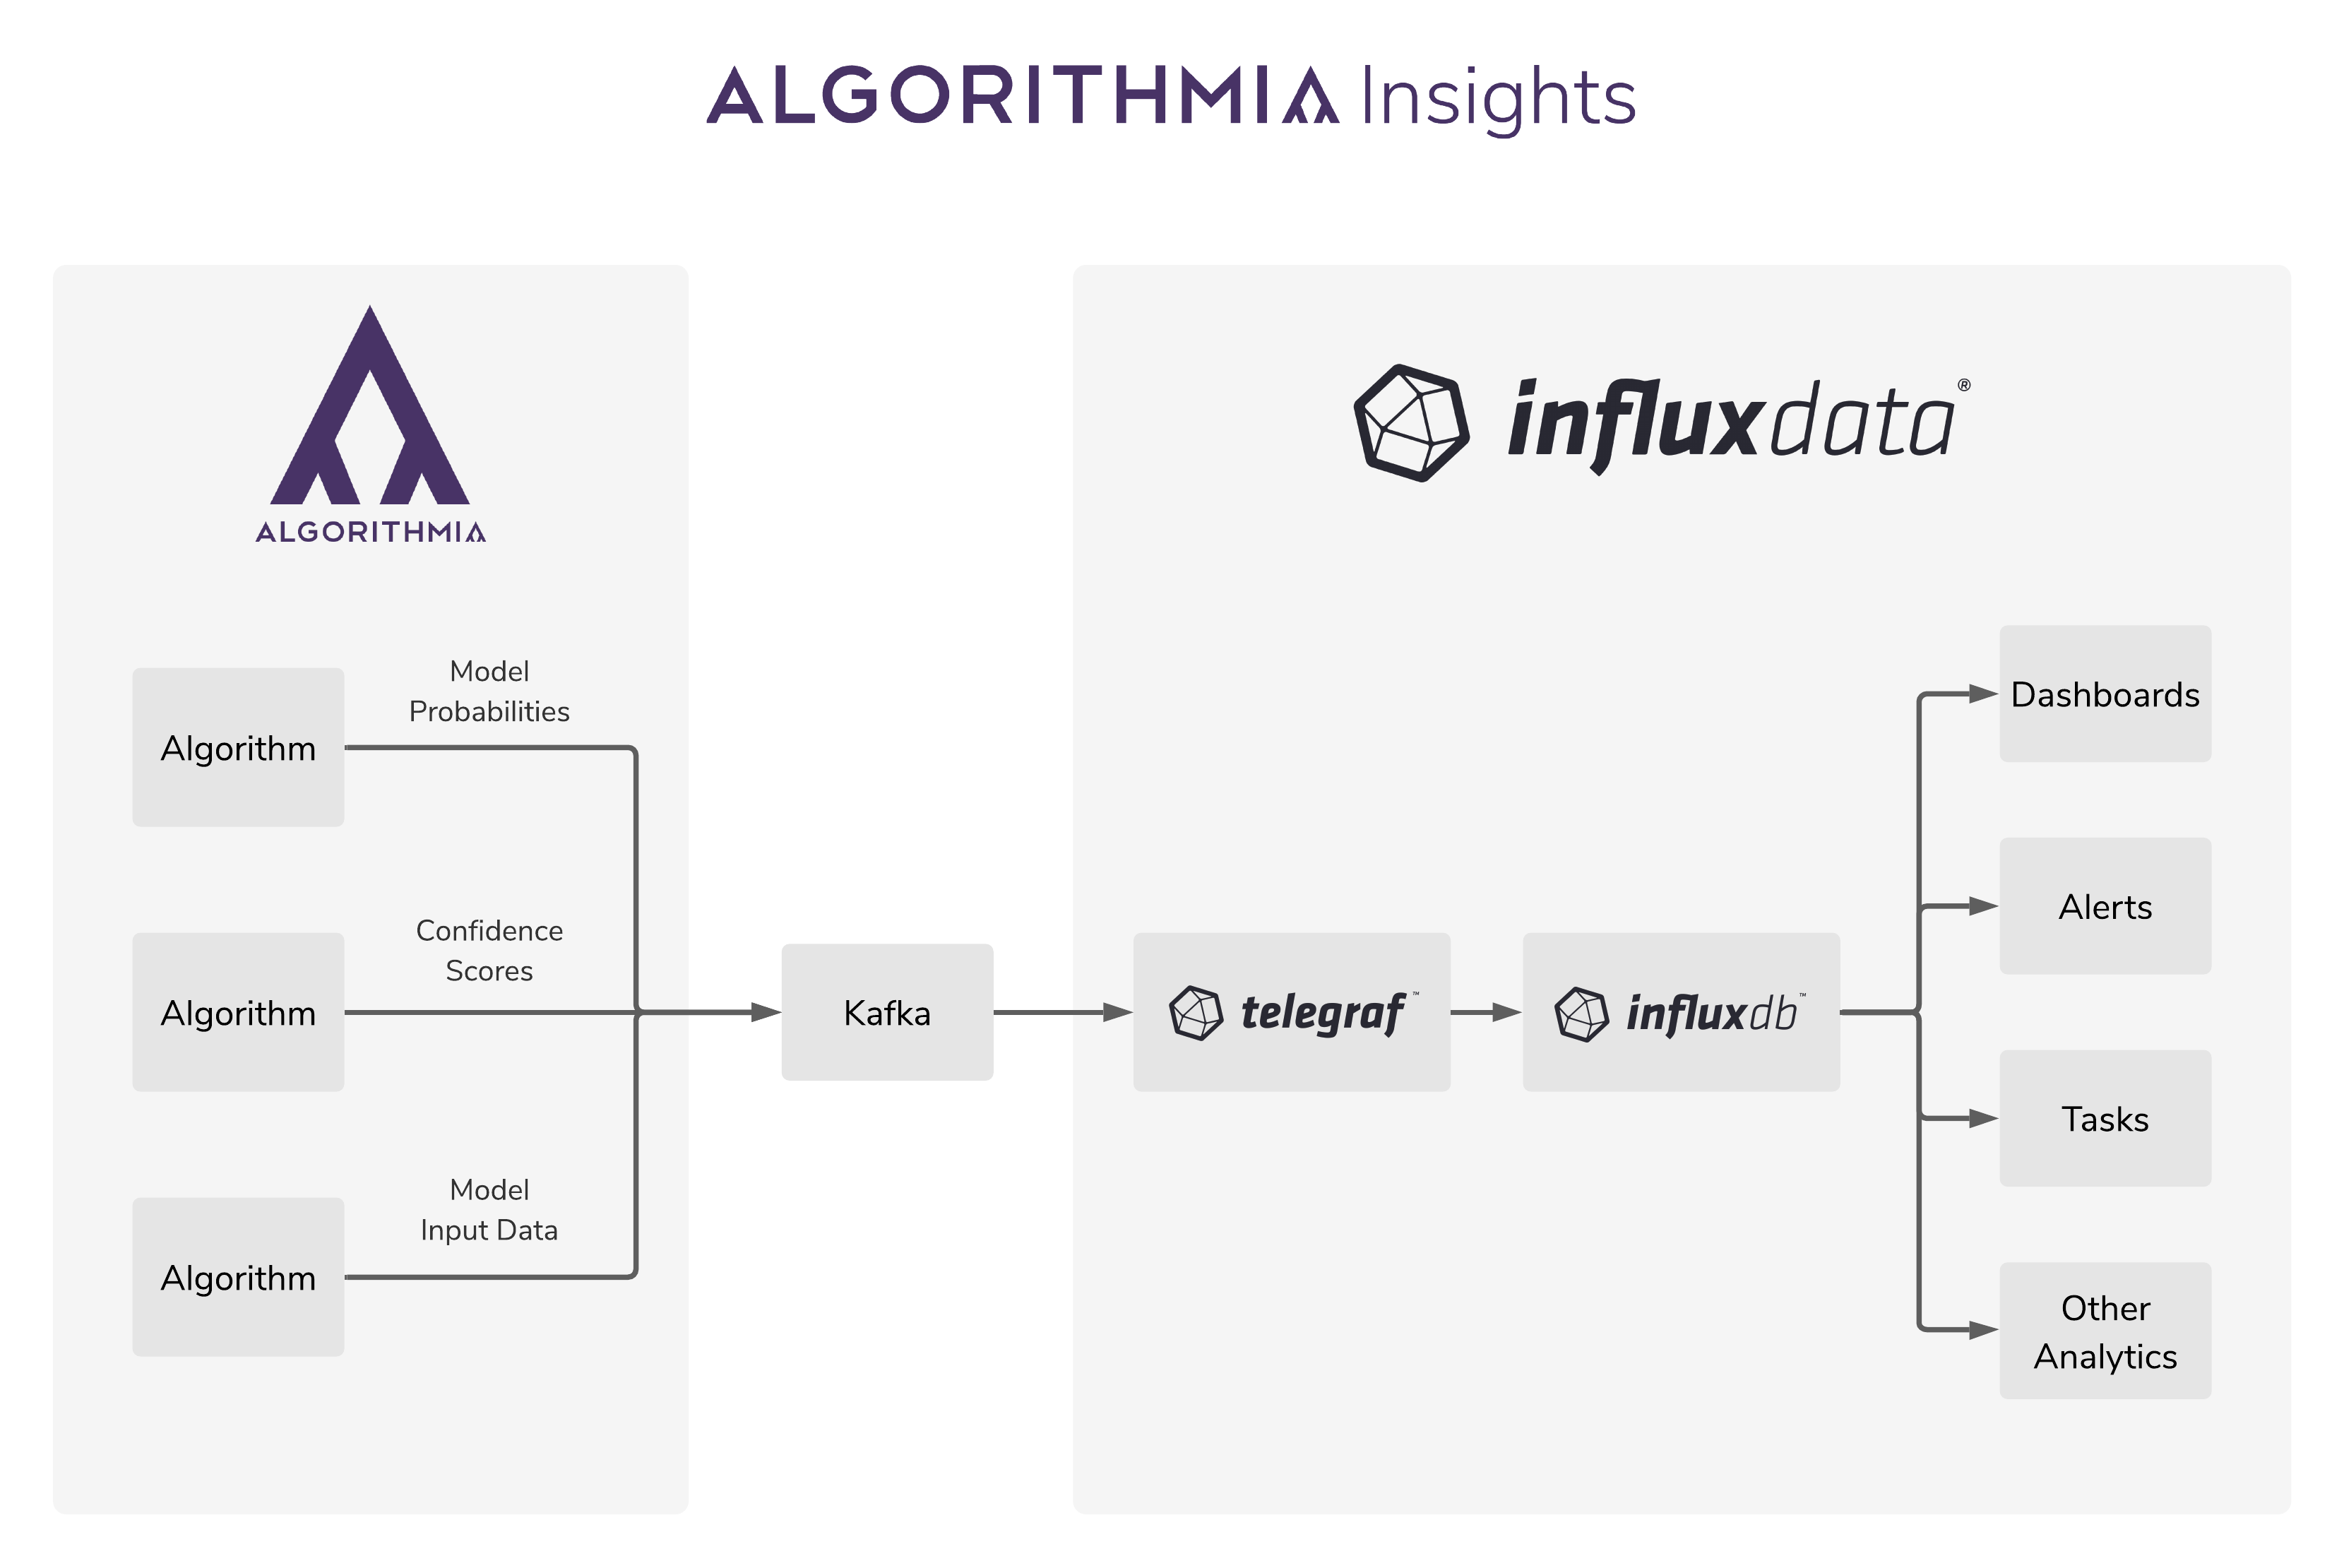 Flow chart of InfluxDB-Algorithmia integration for model performance metrics